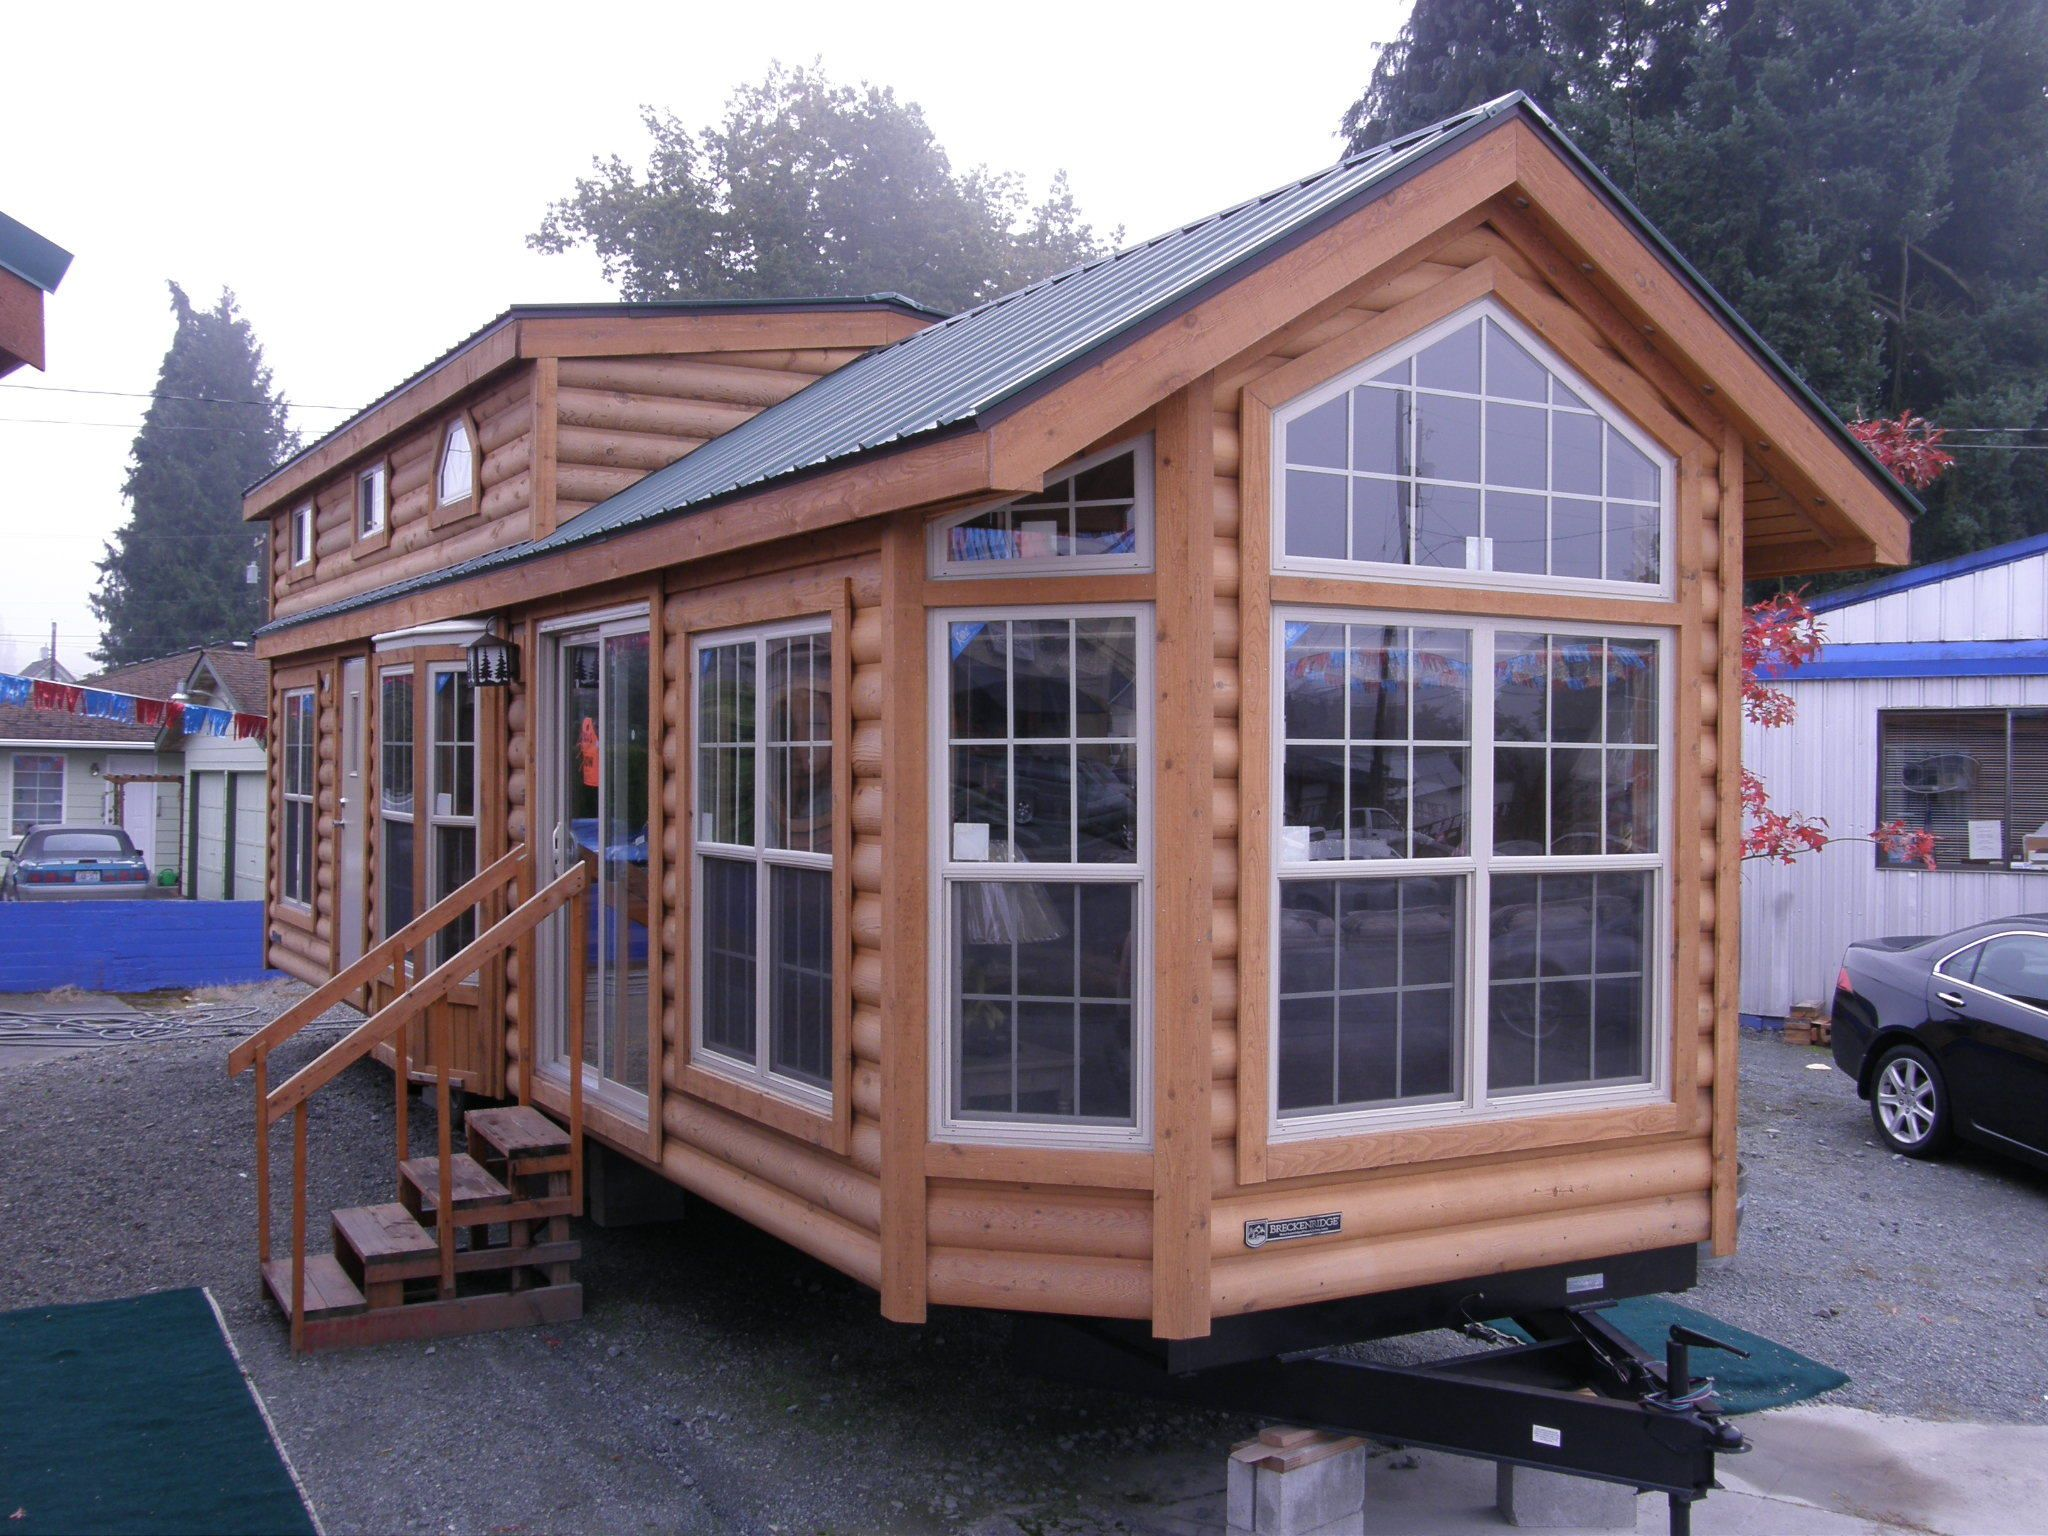 House on wheels craigslist visit open big tiny house on for Large family living in small house